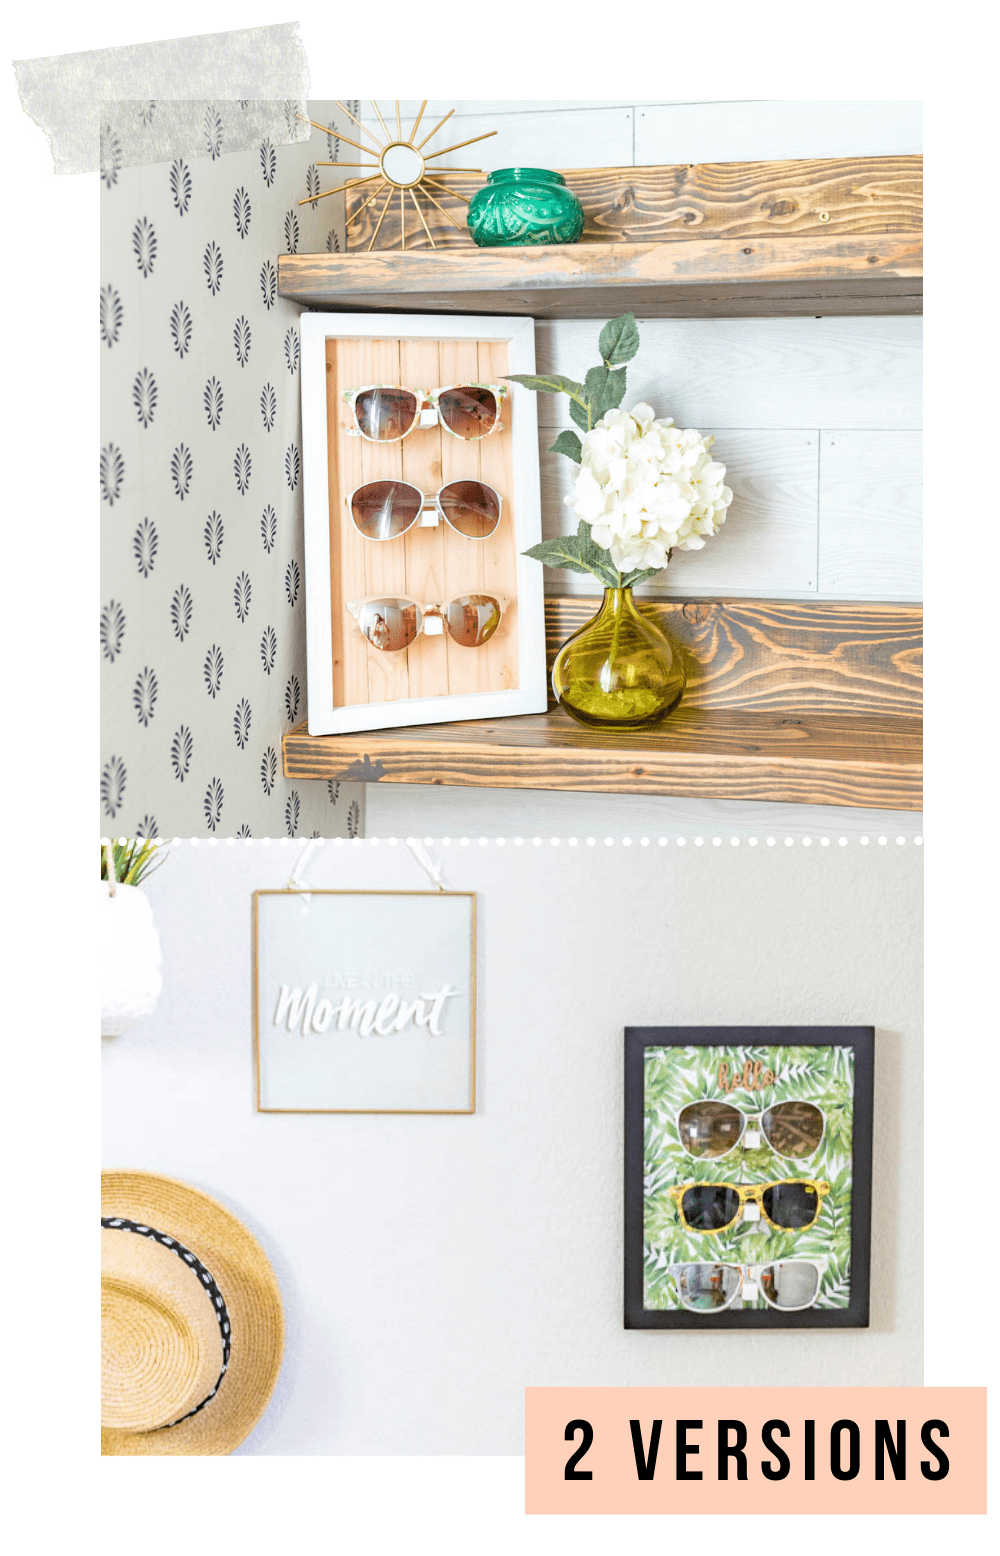 NO POWER TOOLS! sunglasses holder diy | sunglasses holder diy display | sunglasses holder wall | sunglasses holder wall storage ideas | diy sunglass display | siy sunglass holder | home decor | DIY Home decor ideas | Never Skip Brunch by Cara Newhart | #decor #diy #summer #neverskipbrunch